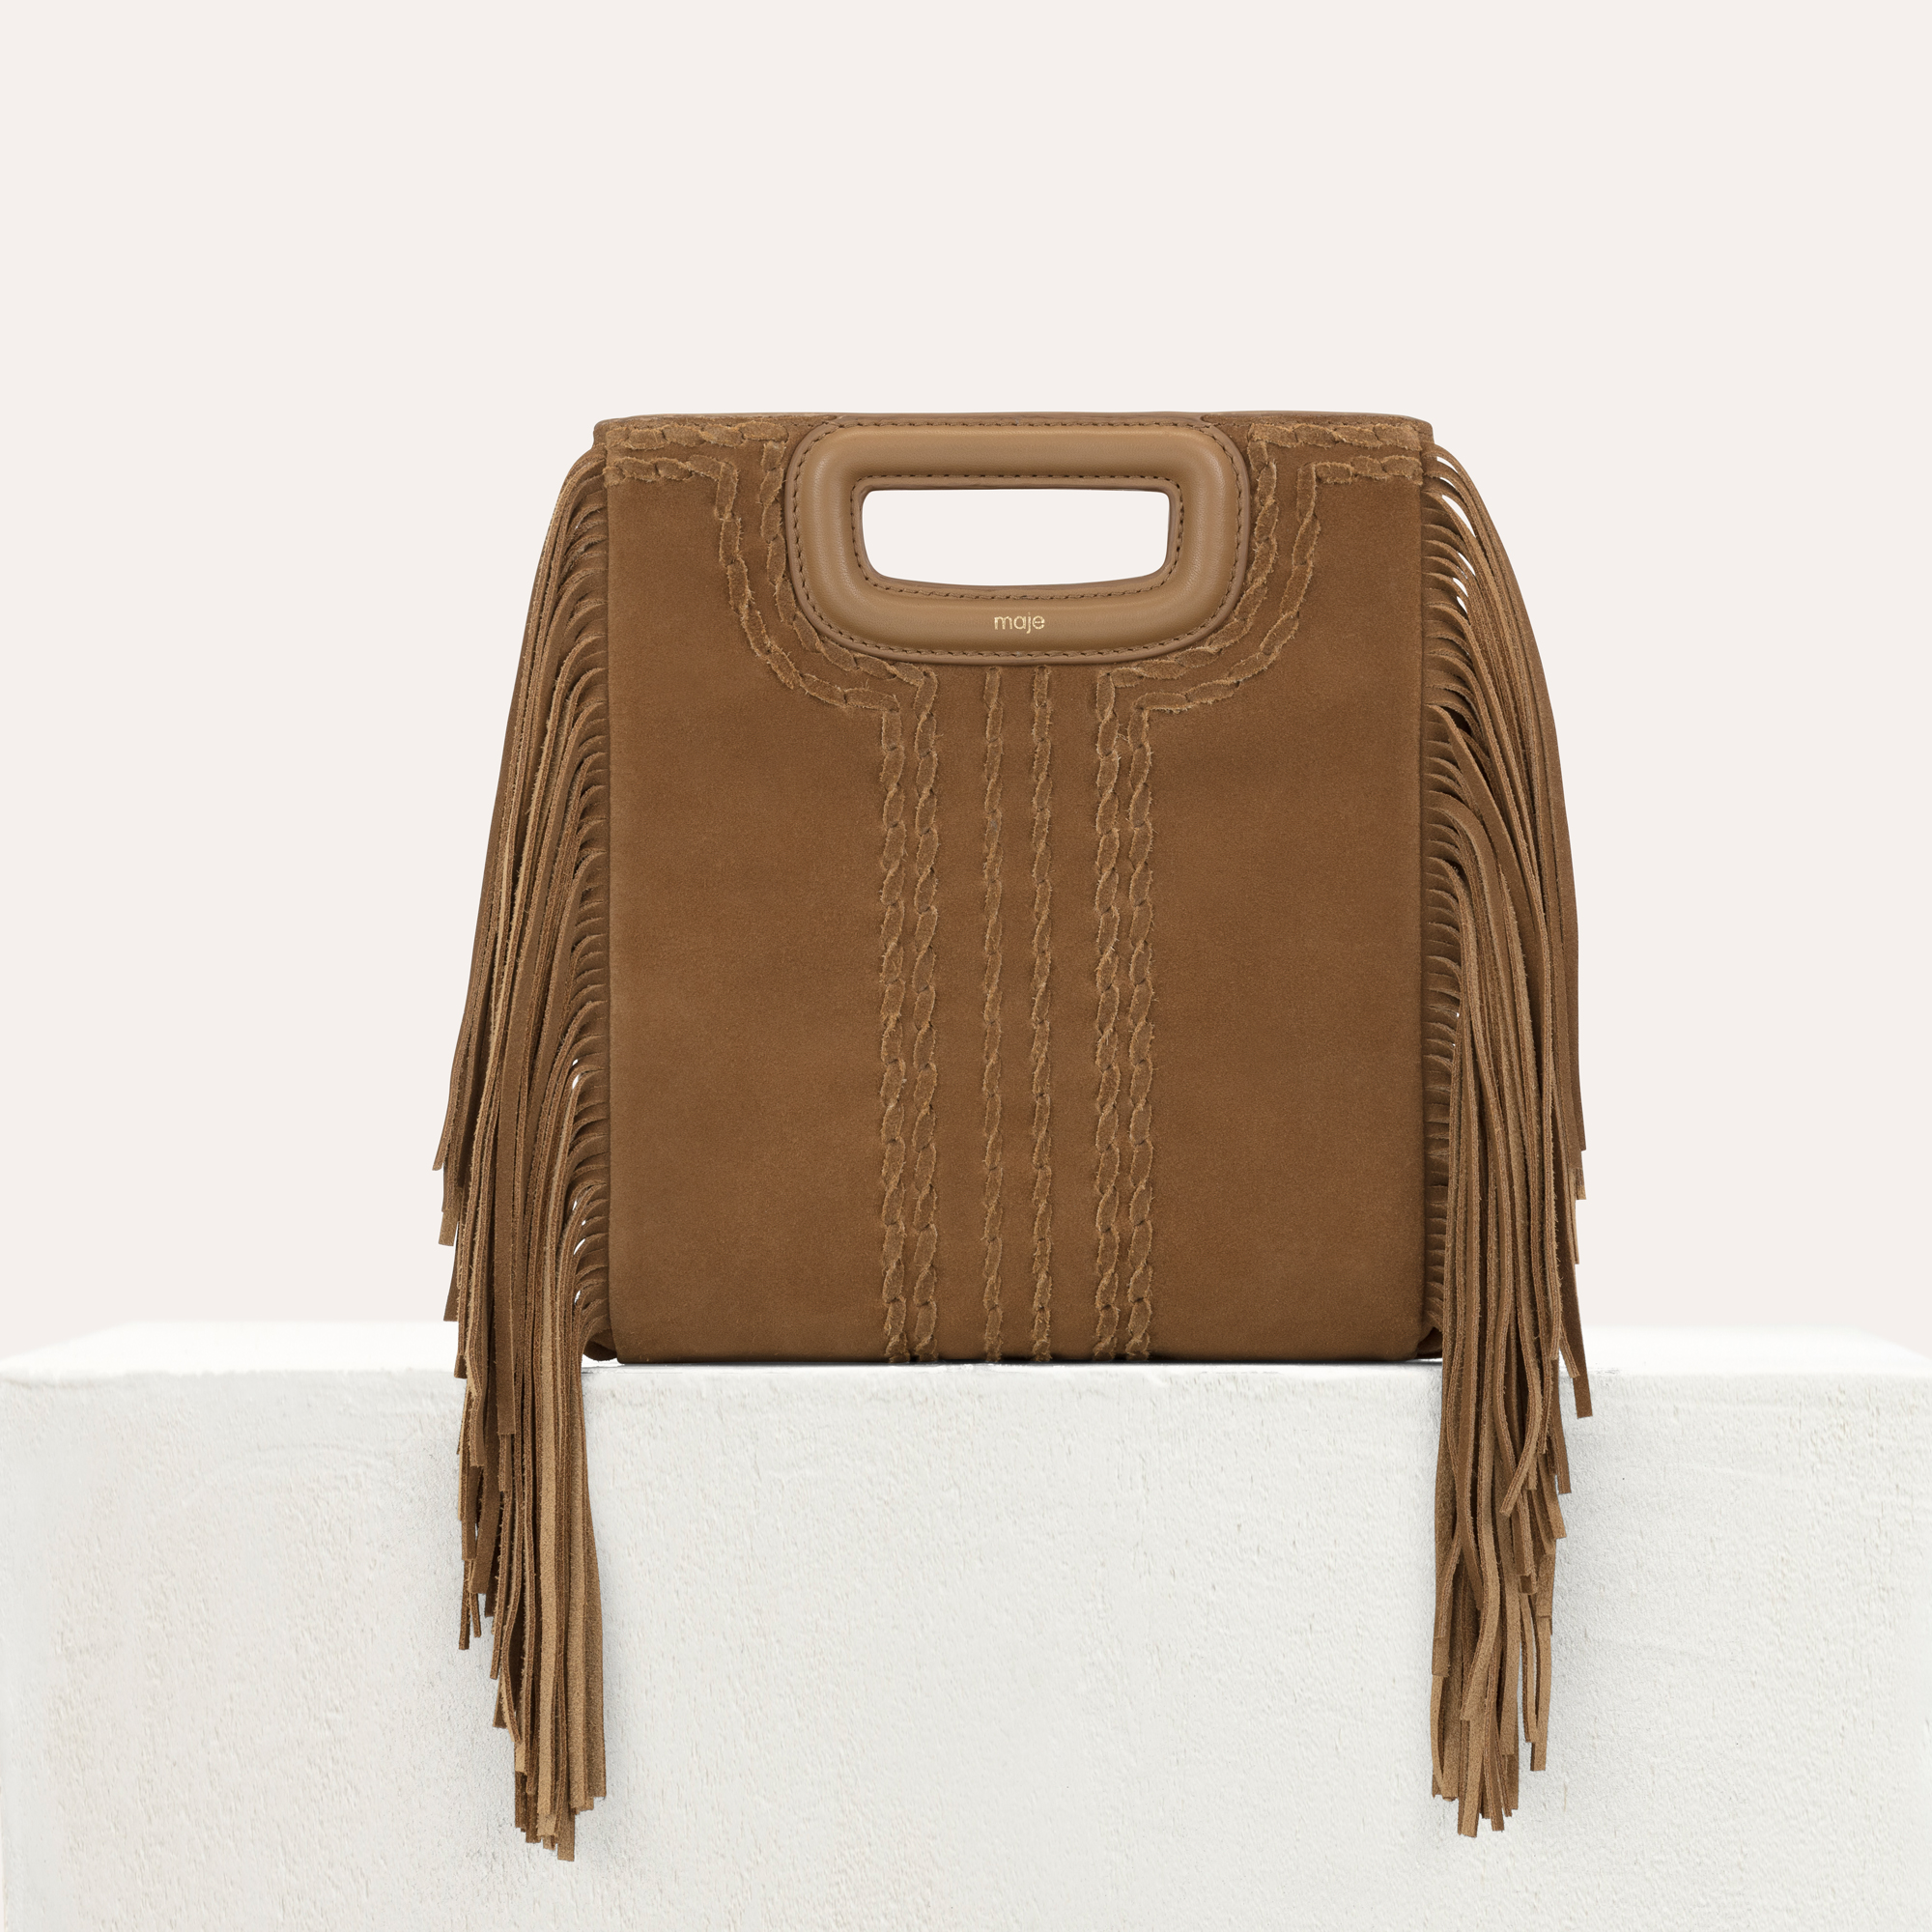 Maje MANOU M bag in braided suede